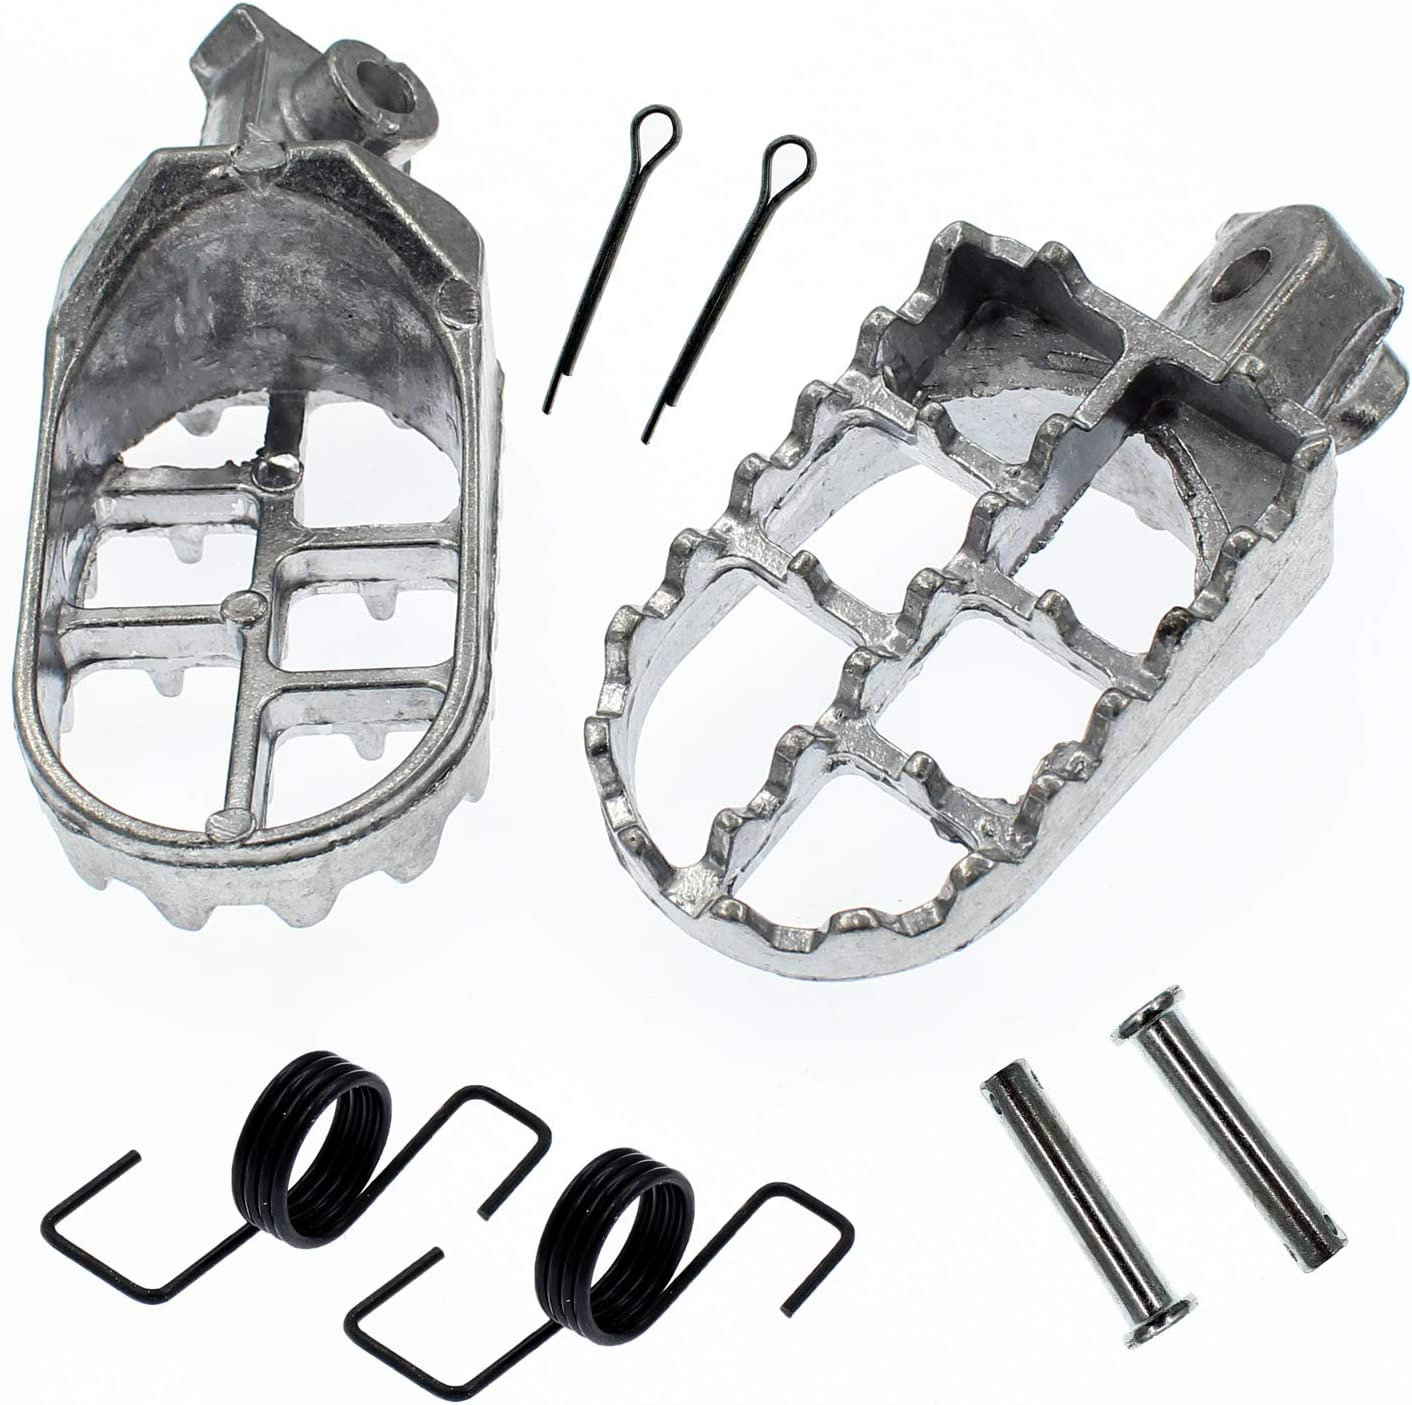 QAZAKY Foot Pegs Rest Footpegs Yamaha Compatible Large-scale sale Tulsa Mall PW80 with PW50